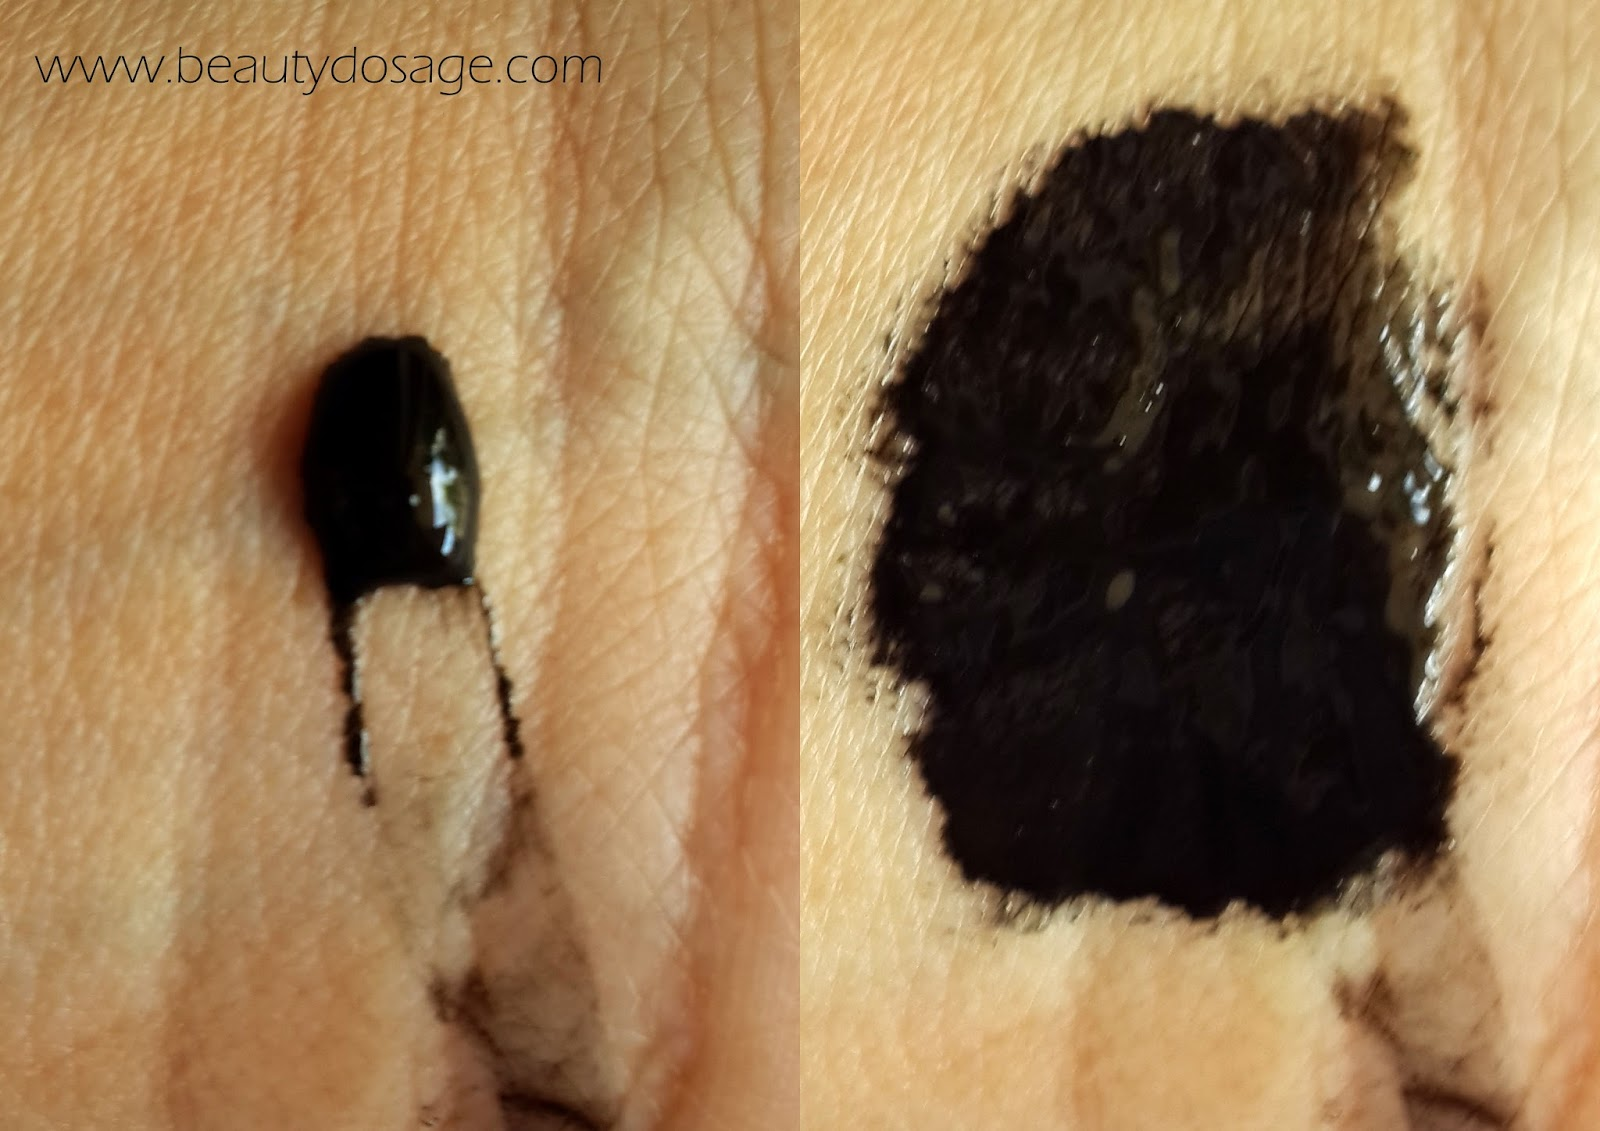 Review Of Shills Purifying Peel Off Black Mask Beauty Dosage Overall Verdict